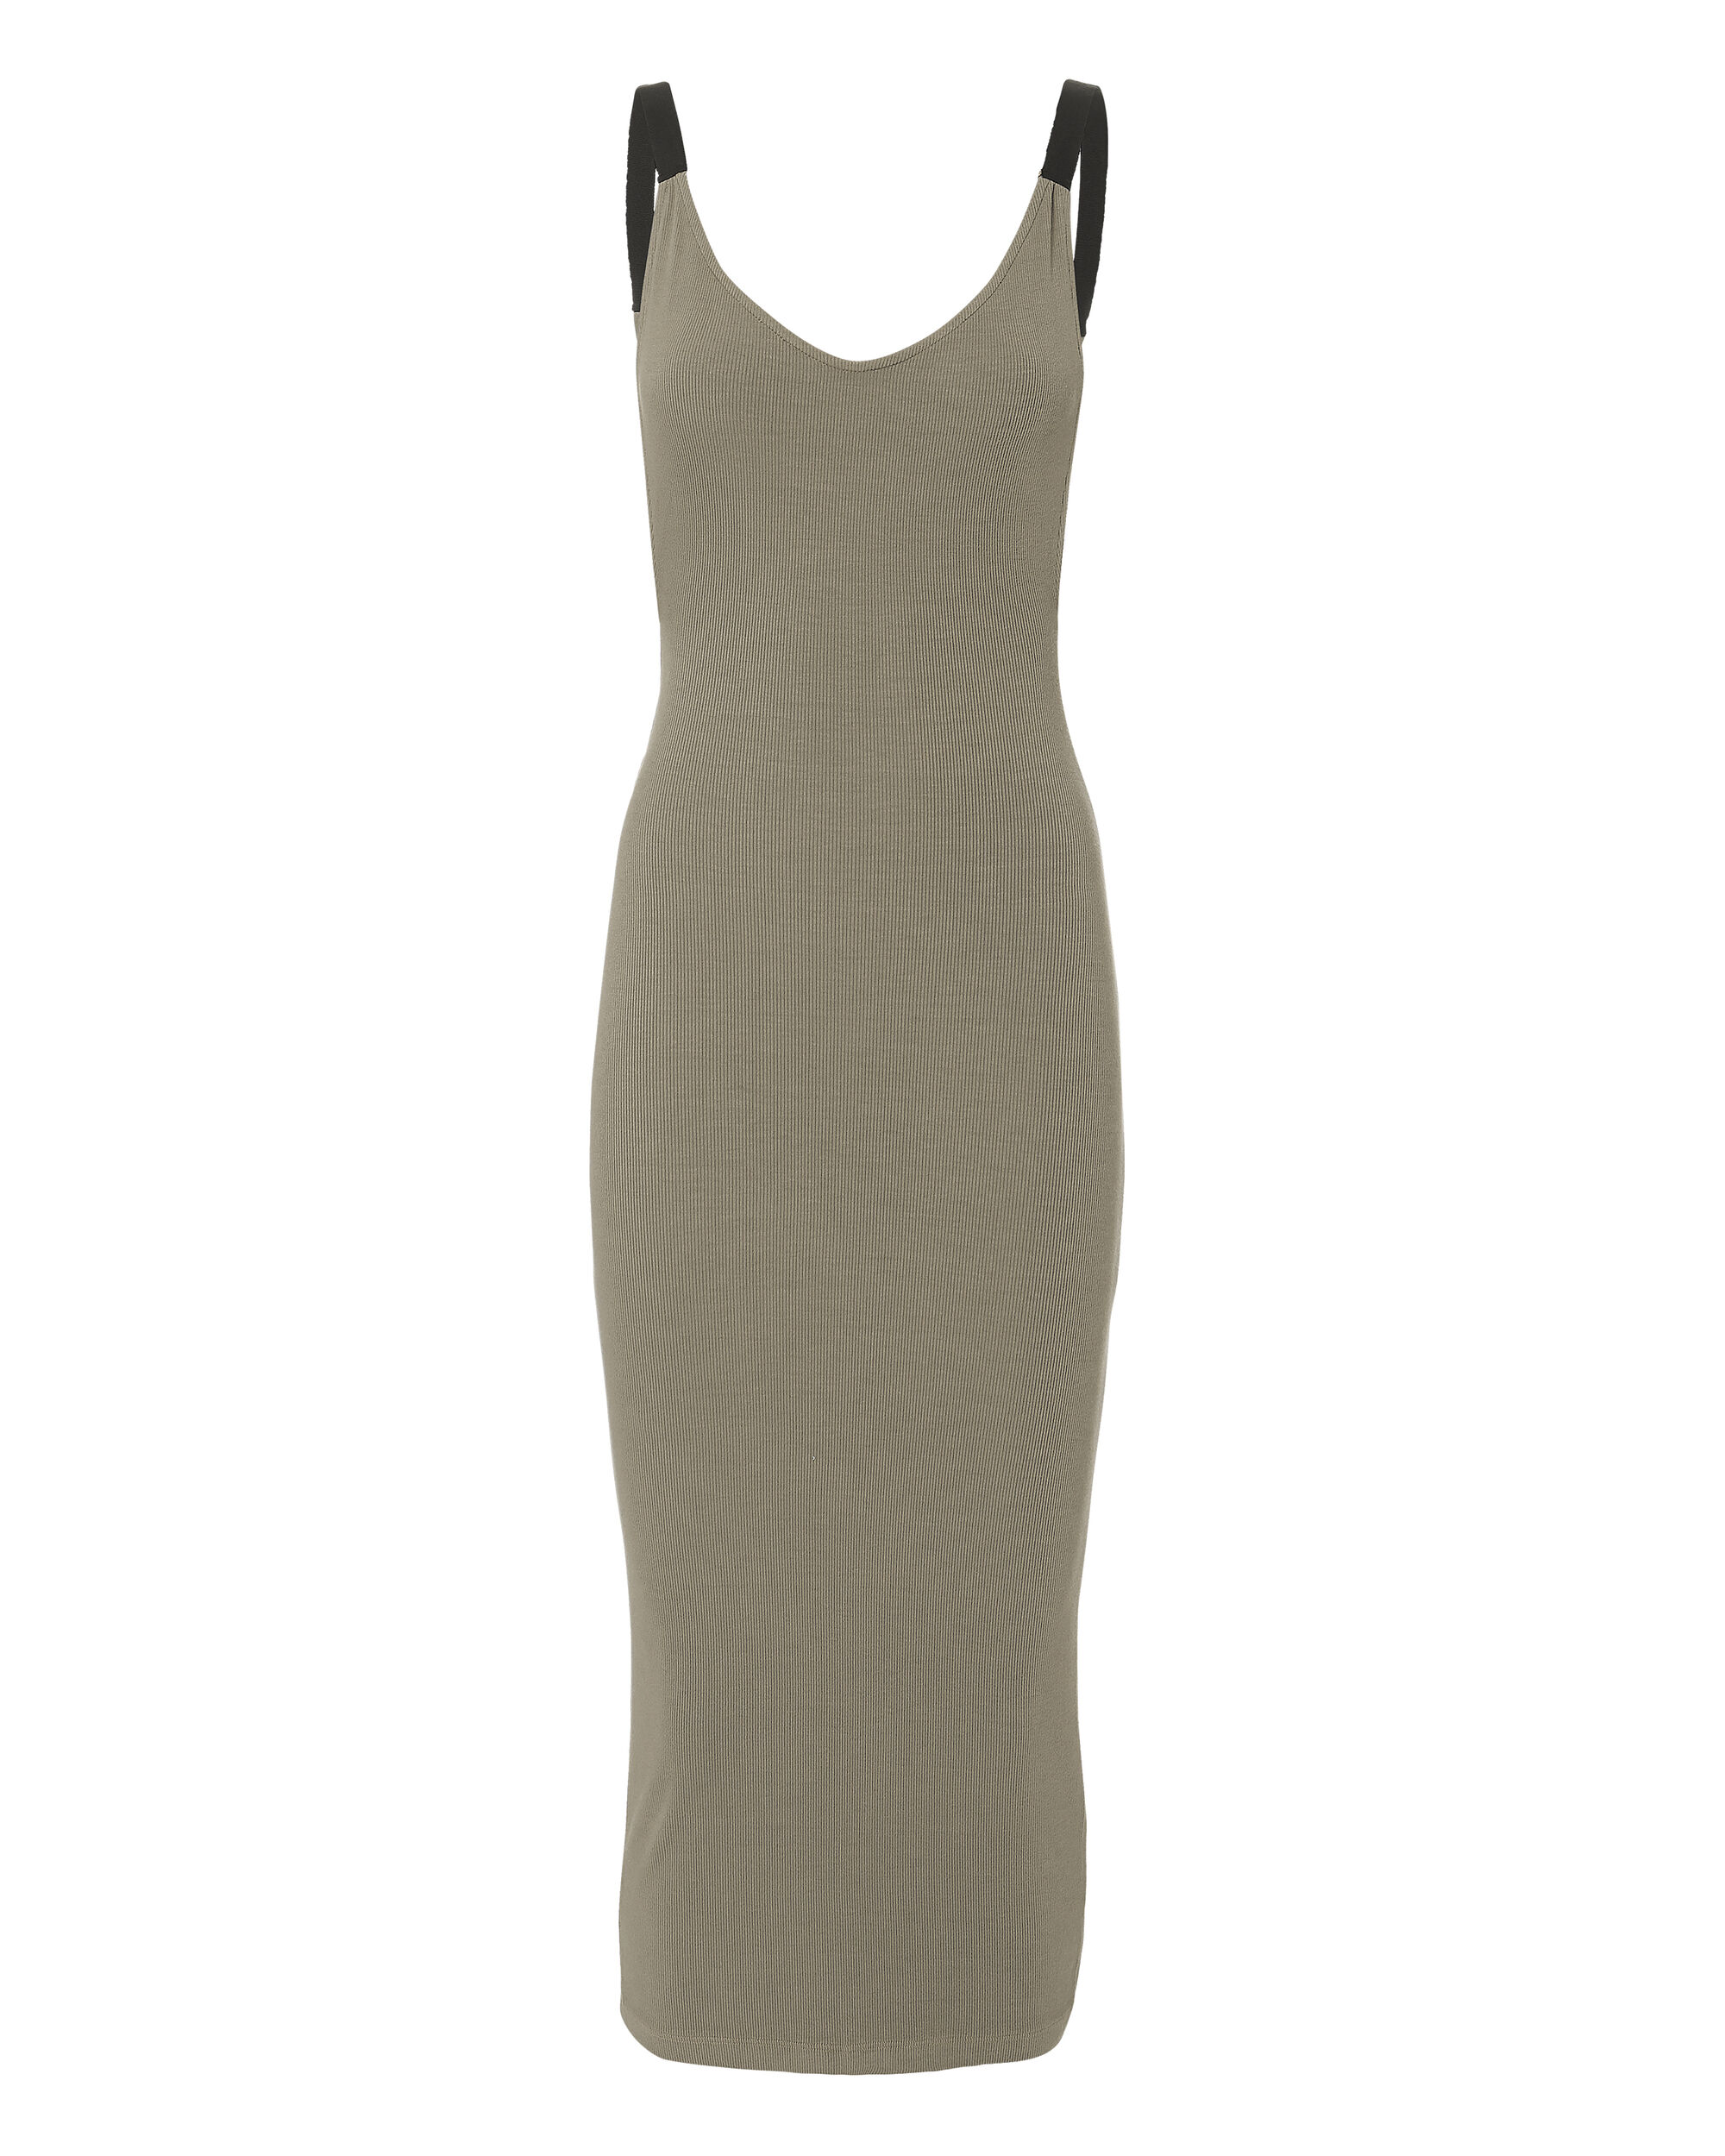 Gia Military Ribbed Dress, OLIVE/ARMY, hi-res